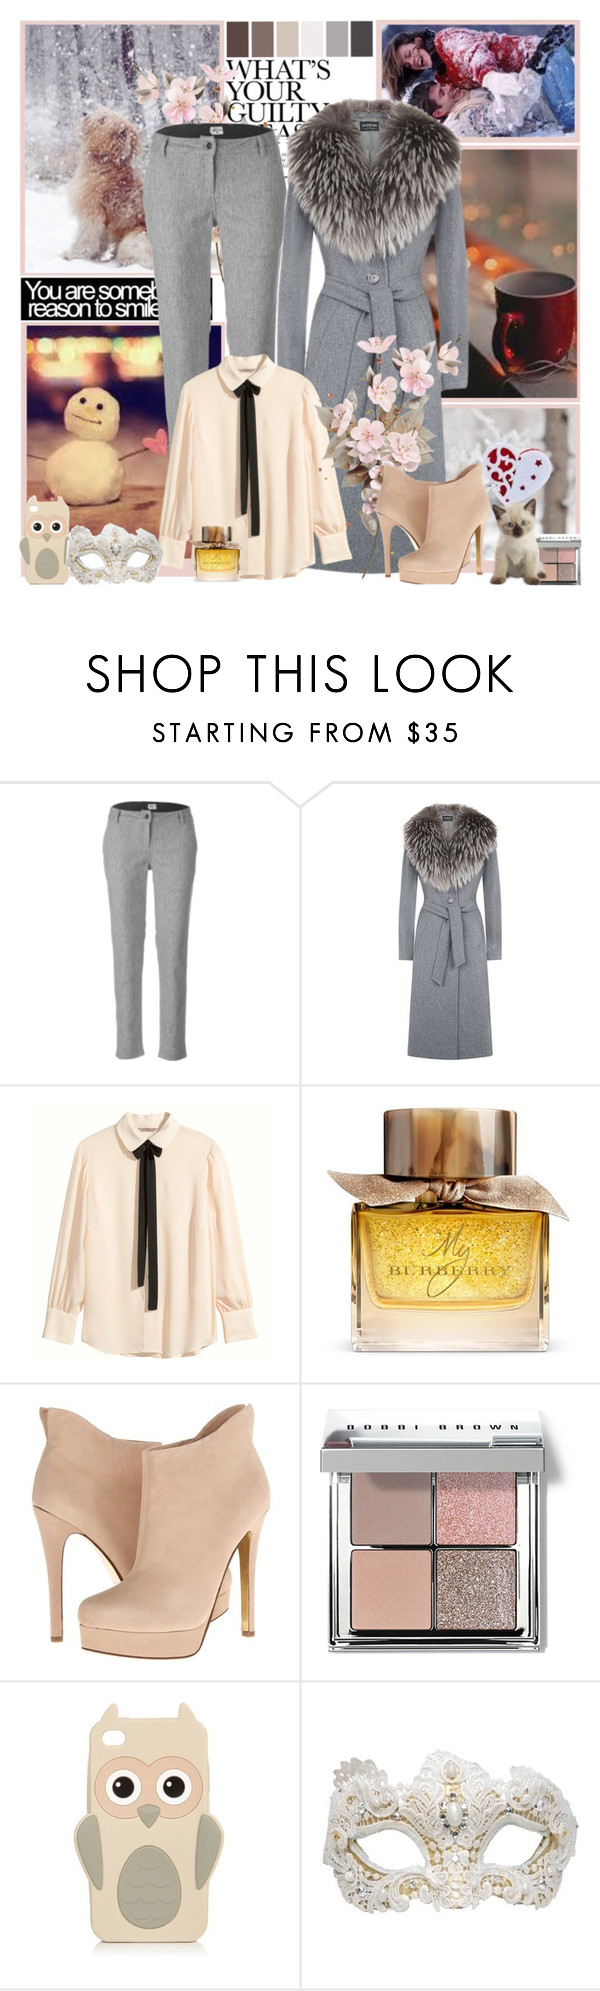 """Winter"" by milica-b3 ❤ liked on Polyvore featuring мода, Bridge & Burn, Harrods, H&M, Burberry, Chinese Laundry, Seed Design, Bobbi Brown Cosmetics и Swarovski"